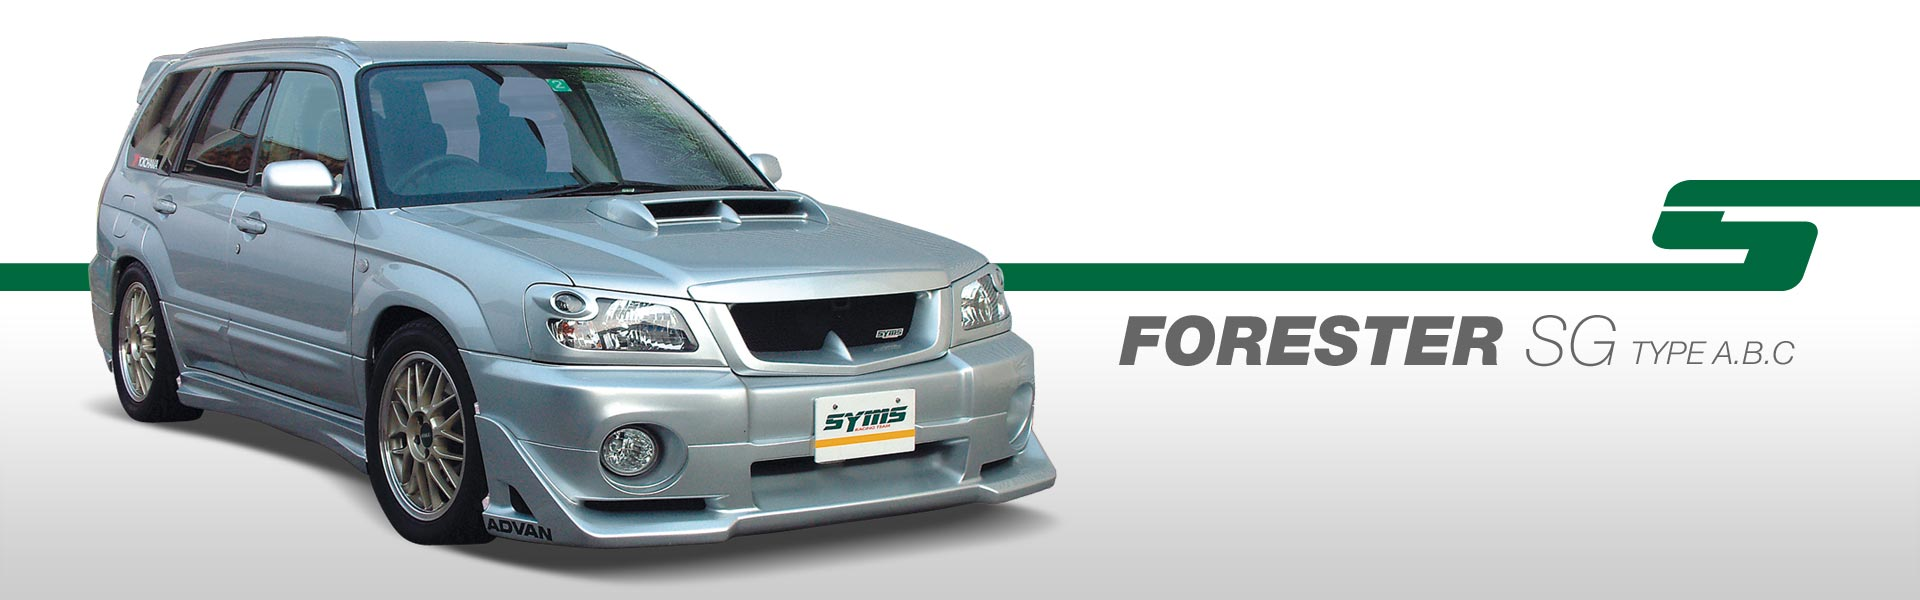 FORESTER - SG - TYPE A.B.C